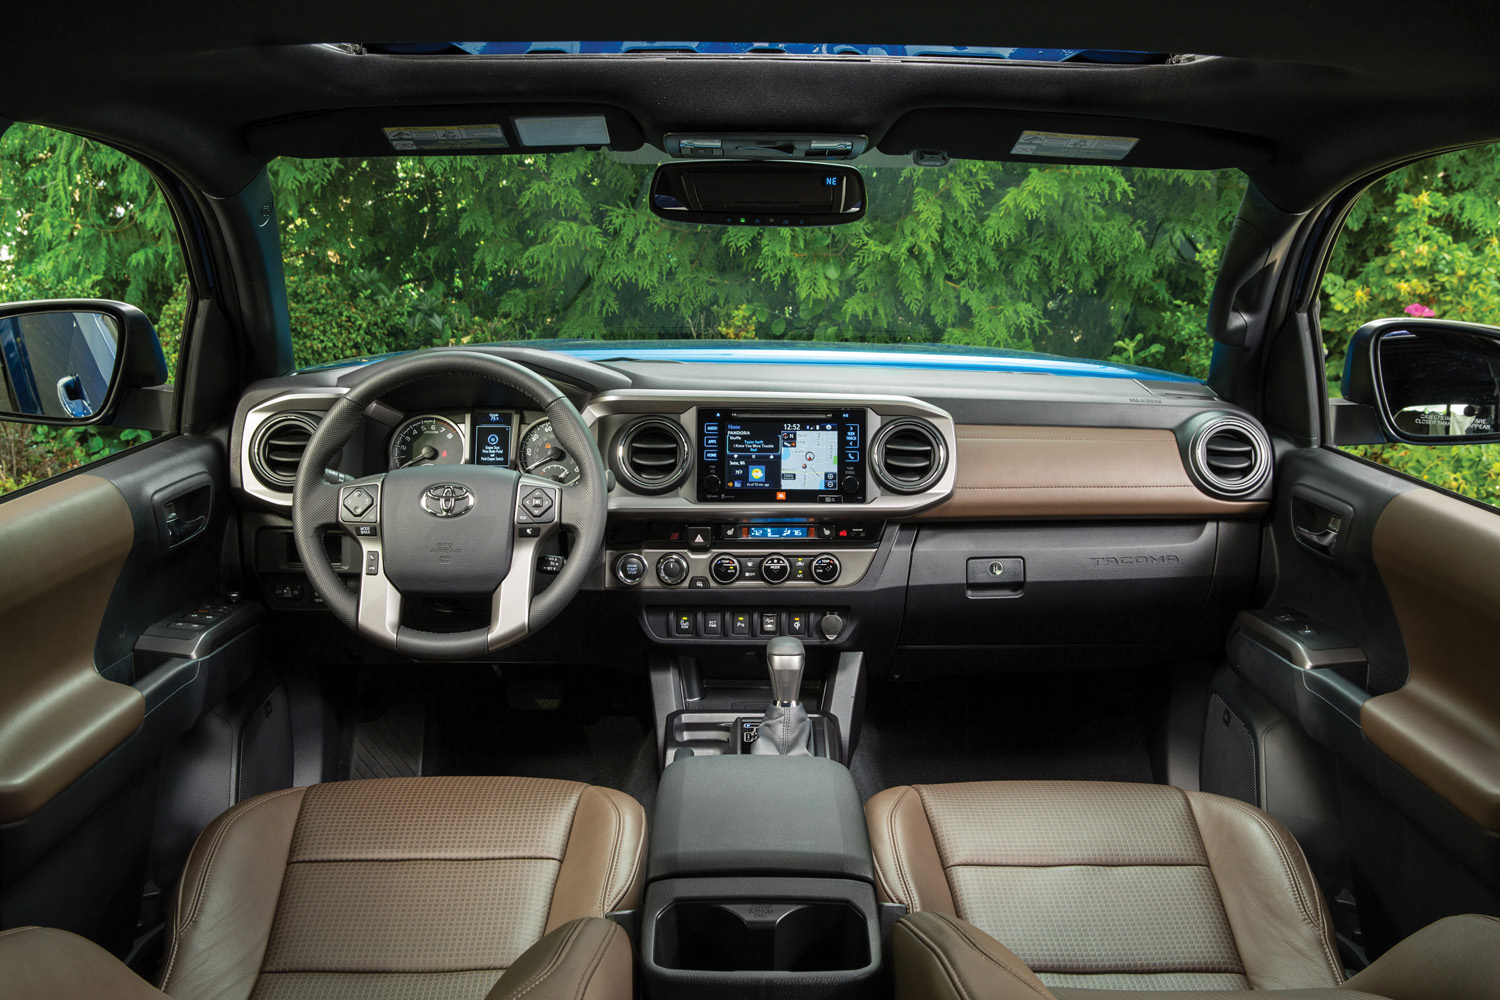 Interior of the 2016 Tacoma.